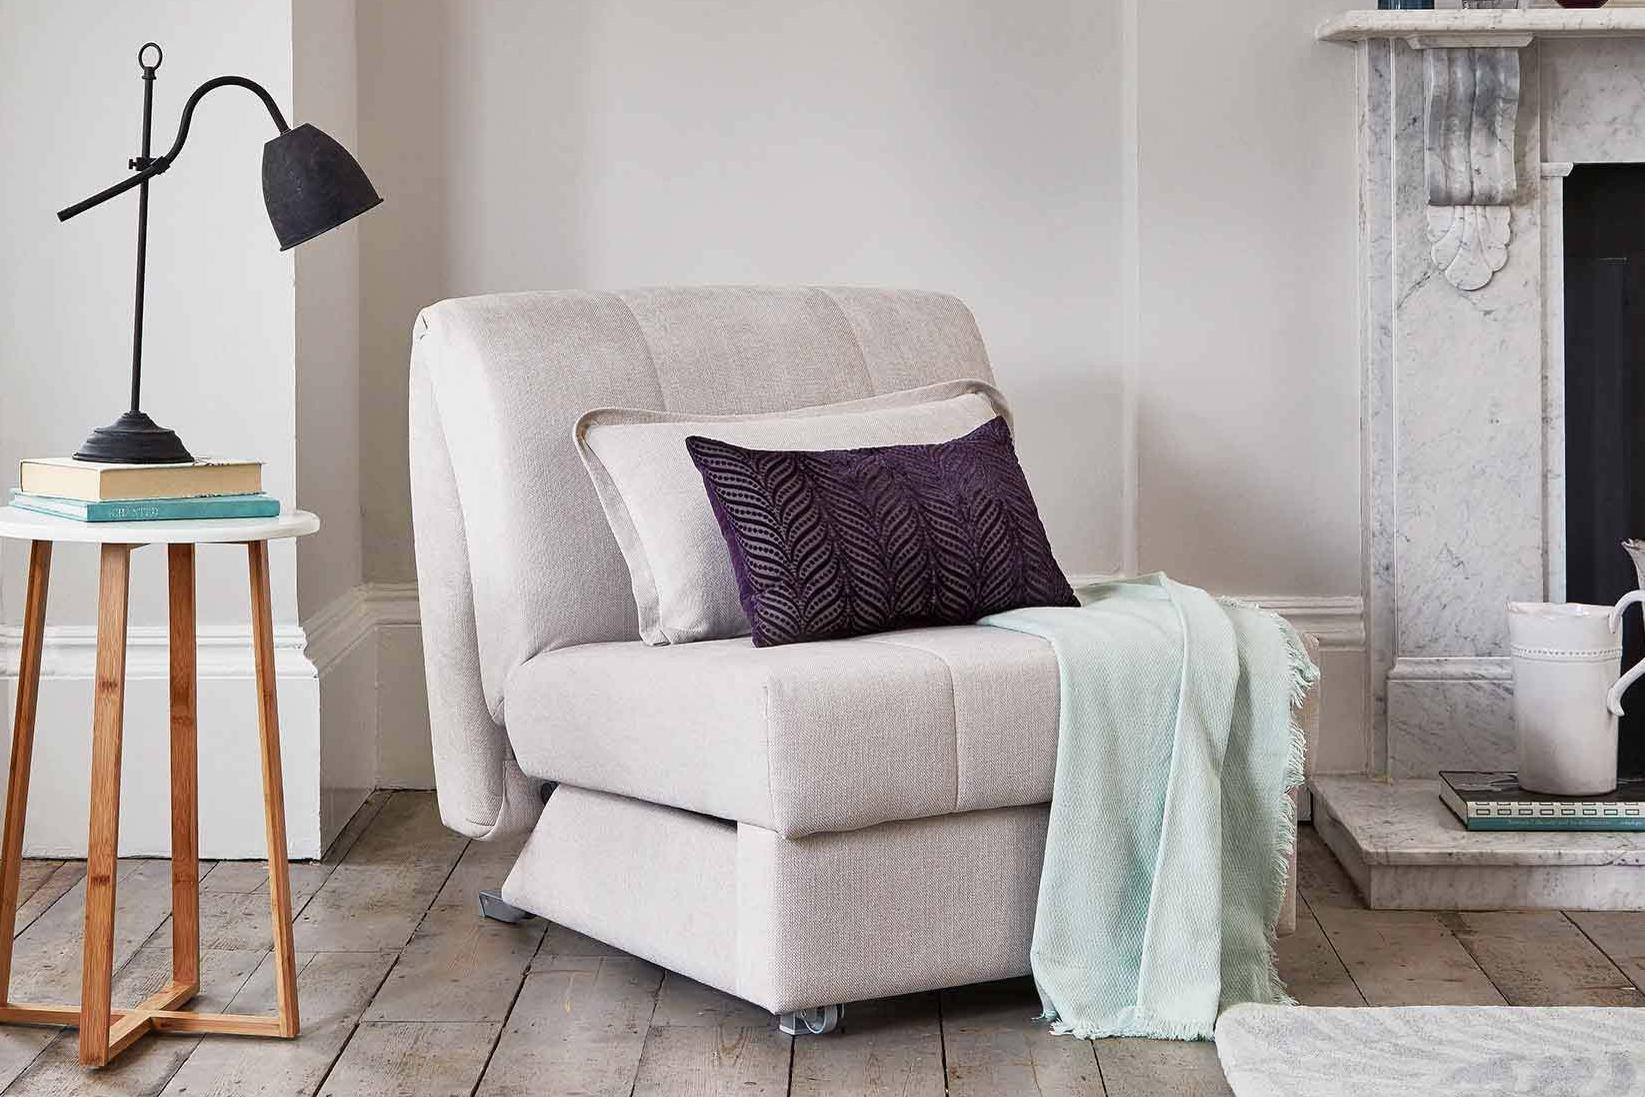 Full Size of Sofa Alternatives Ikea Best Bed Cheap Togo Reddit To Sleeper Sofas Crossword Living Room For Small Spaces Couch Uk Beds The Comfortable Couches With Style Sofa Sofa Alternatives